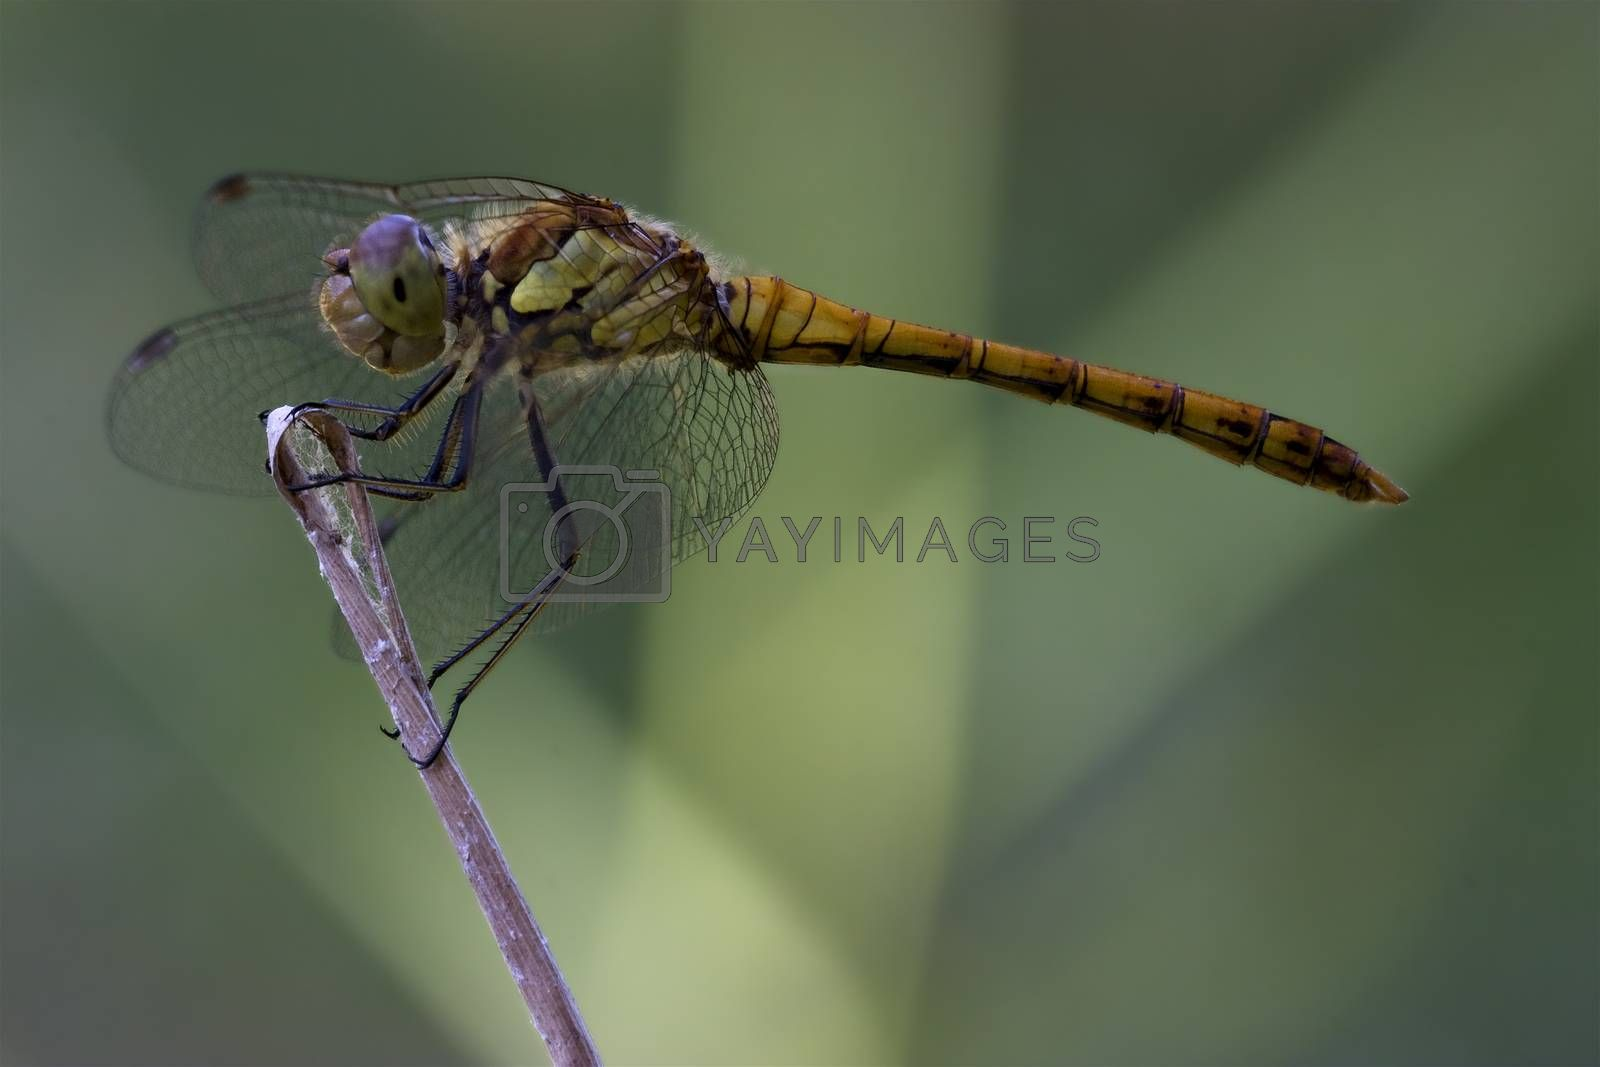 Royalty free image of  wild black yellow dragonfly  by lkpro